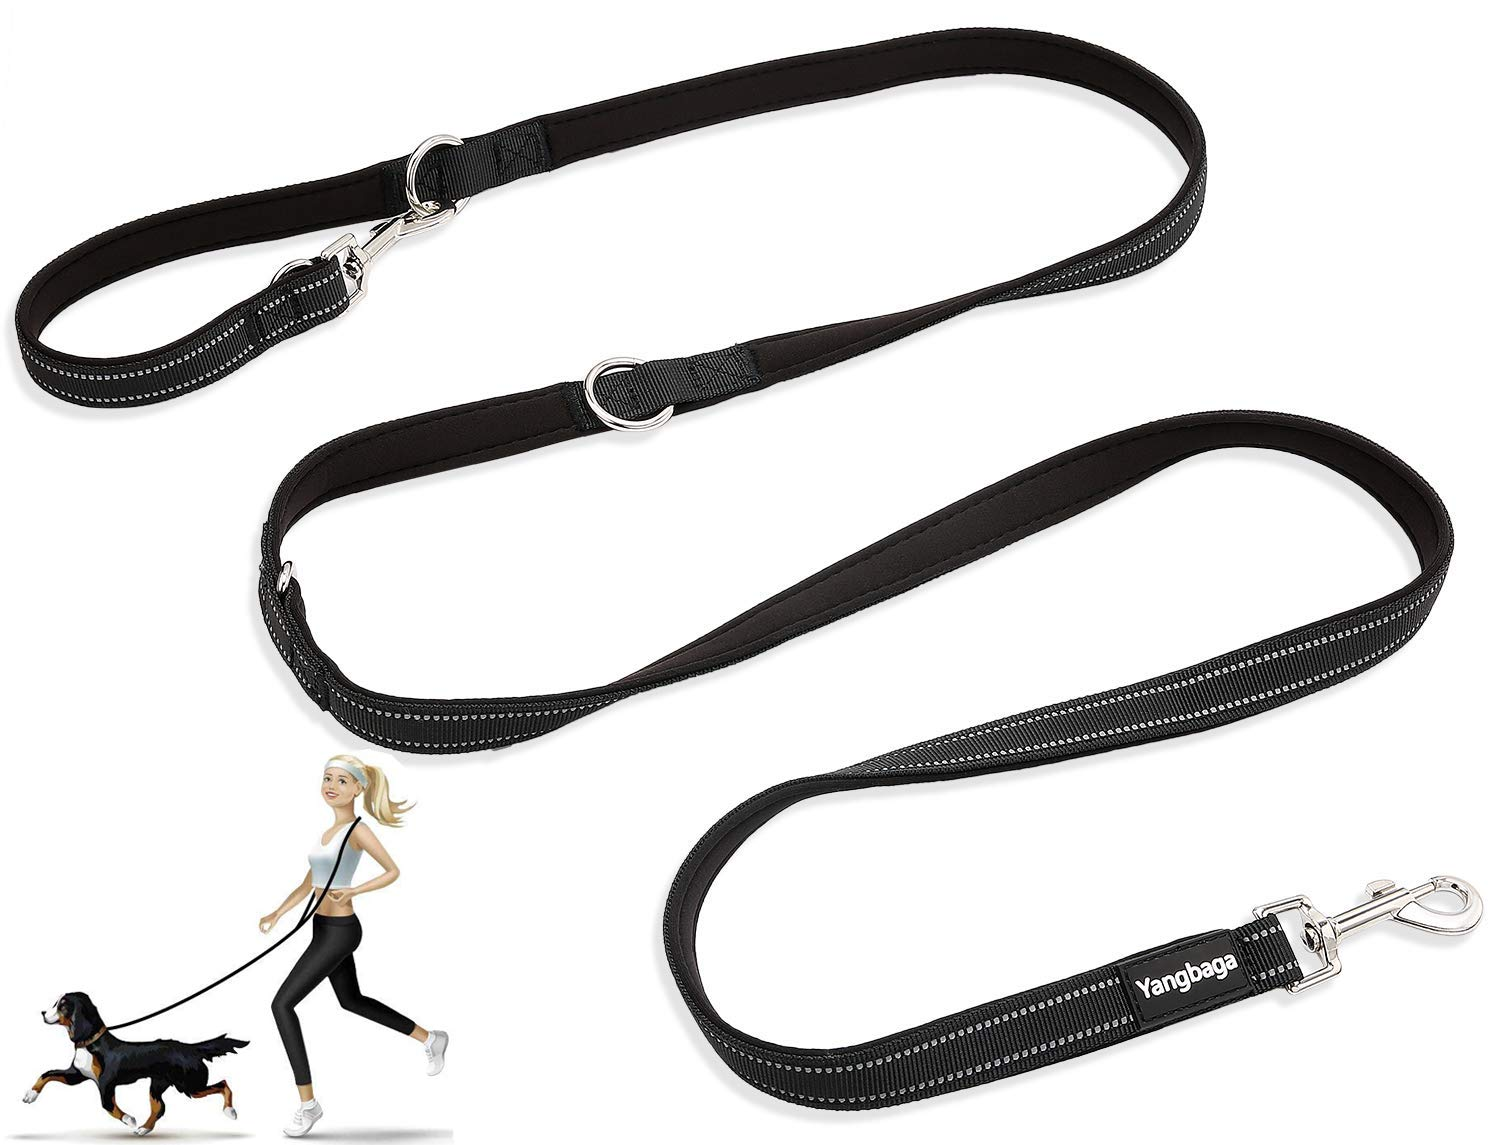 Dog Lead, Hands Free Dog Leash,Multifunctional Dog Rope Training Leads for Running Walking Hiking, adjustable to 4 different lengths Nylon Double Running Lead for Small, Medium or Large Dogs